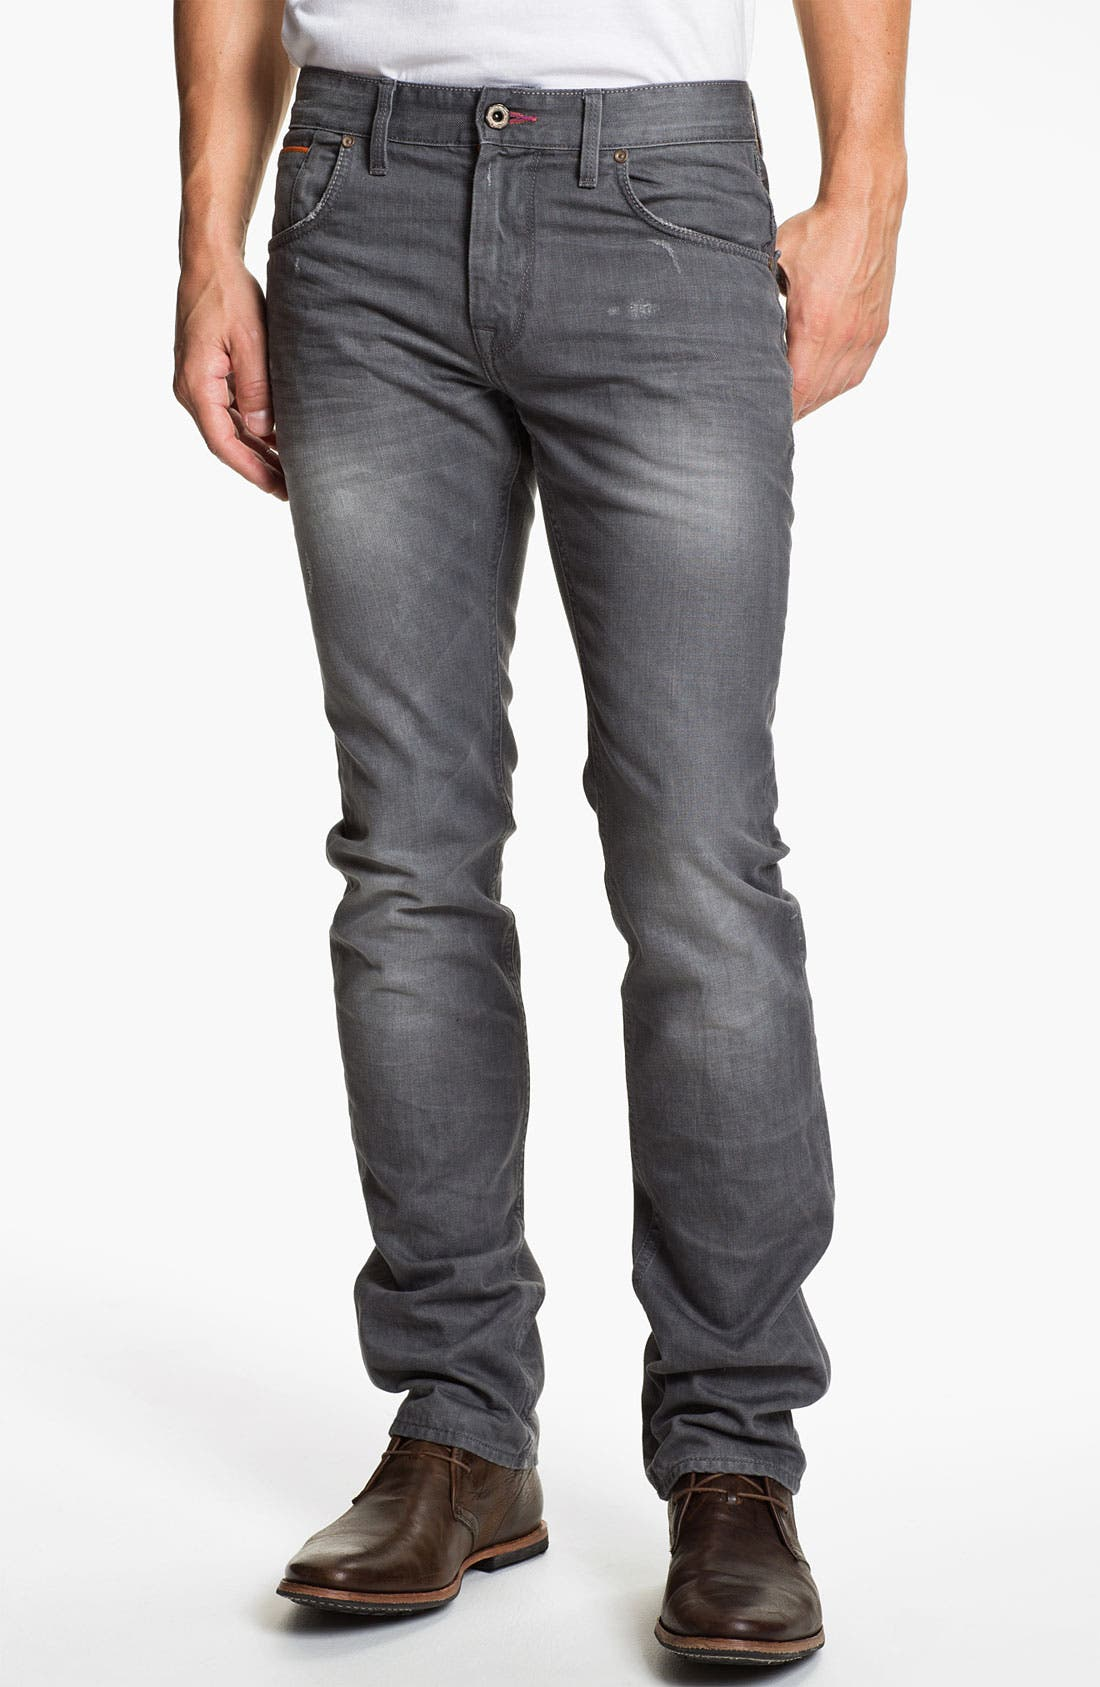 Alternate Image 1 Selected - Robert Graham Jeans 'Grey Day' Slim Straight Leg Jeans (Grey)